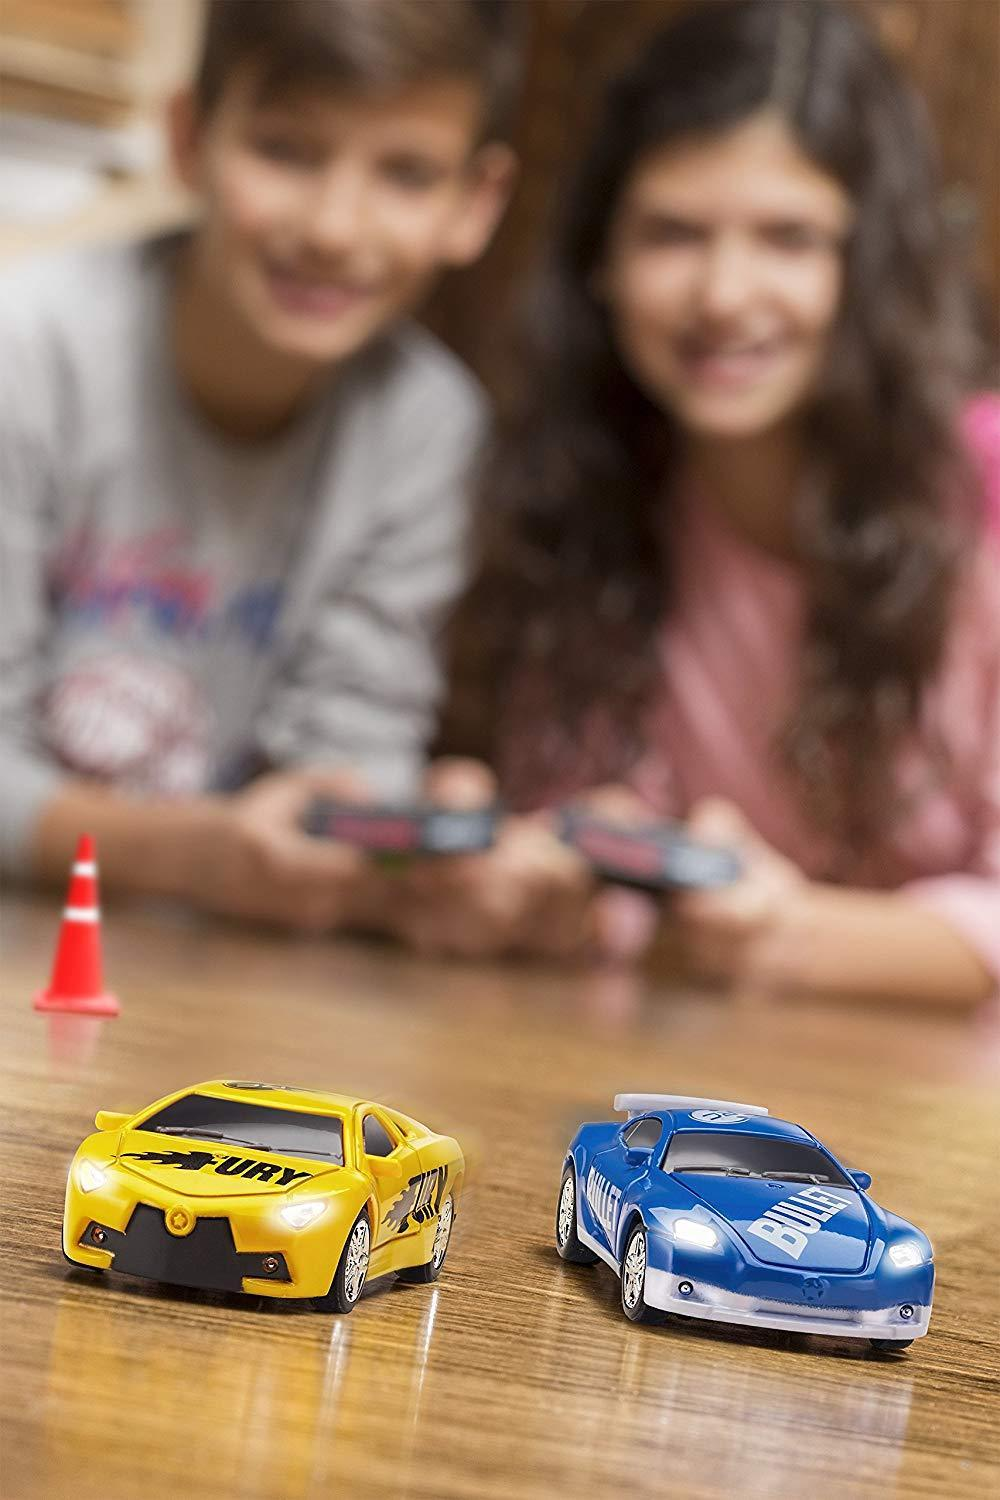 RC Pocket Racer Remote Controlled Micro Race Car Vehicle & Road As Seen On TV